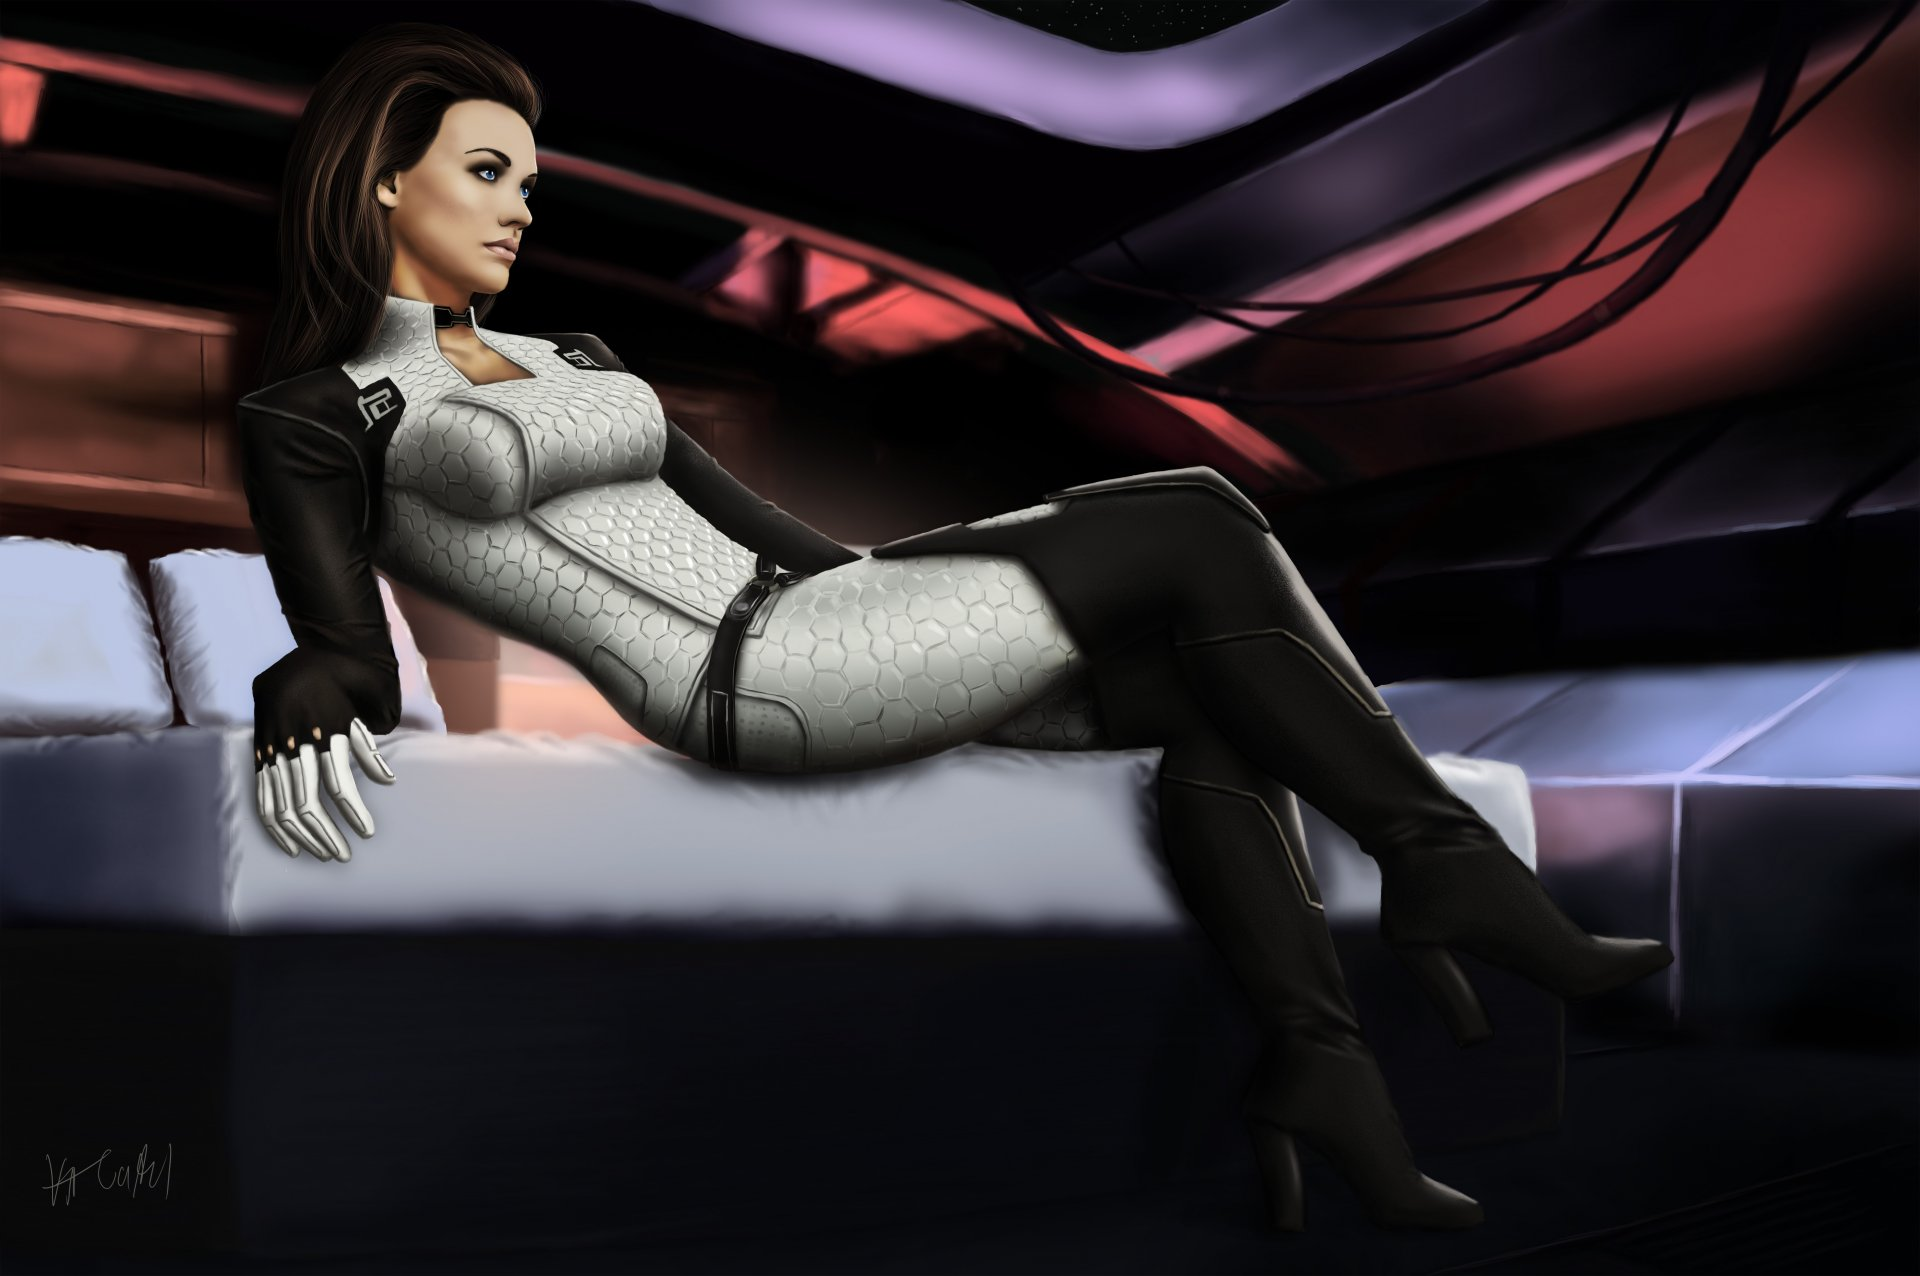 Mass effect miranda nackt sexual scene